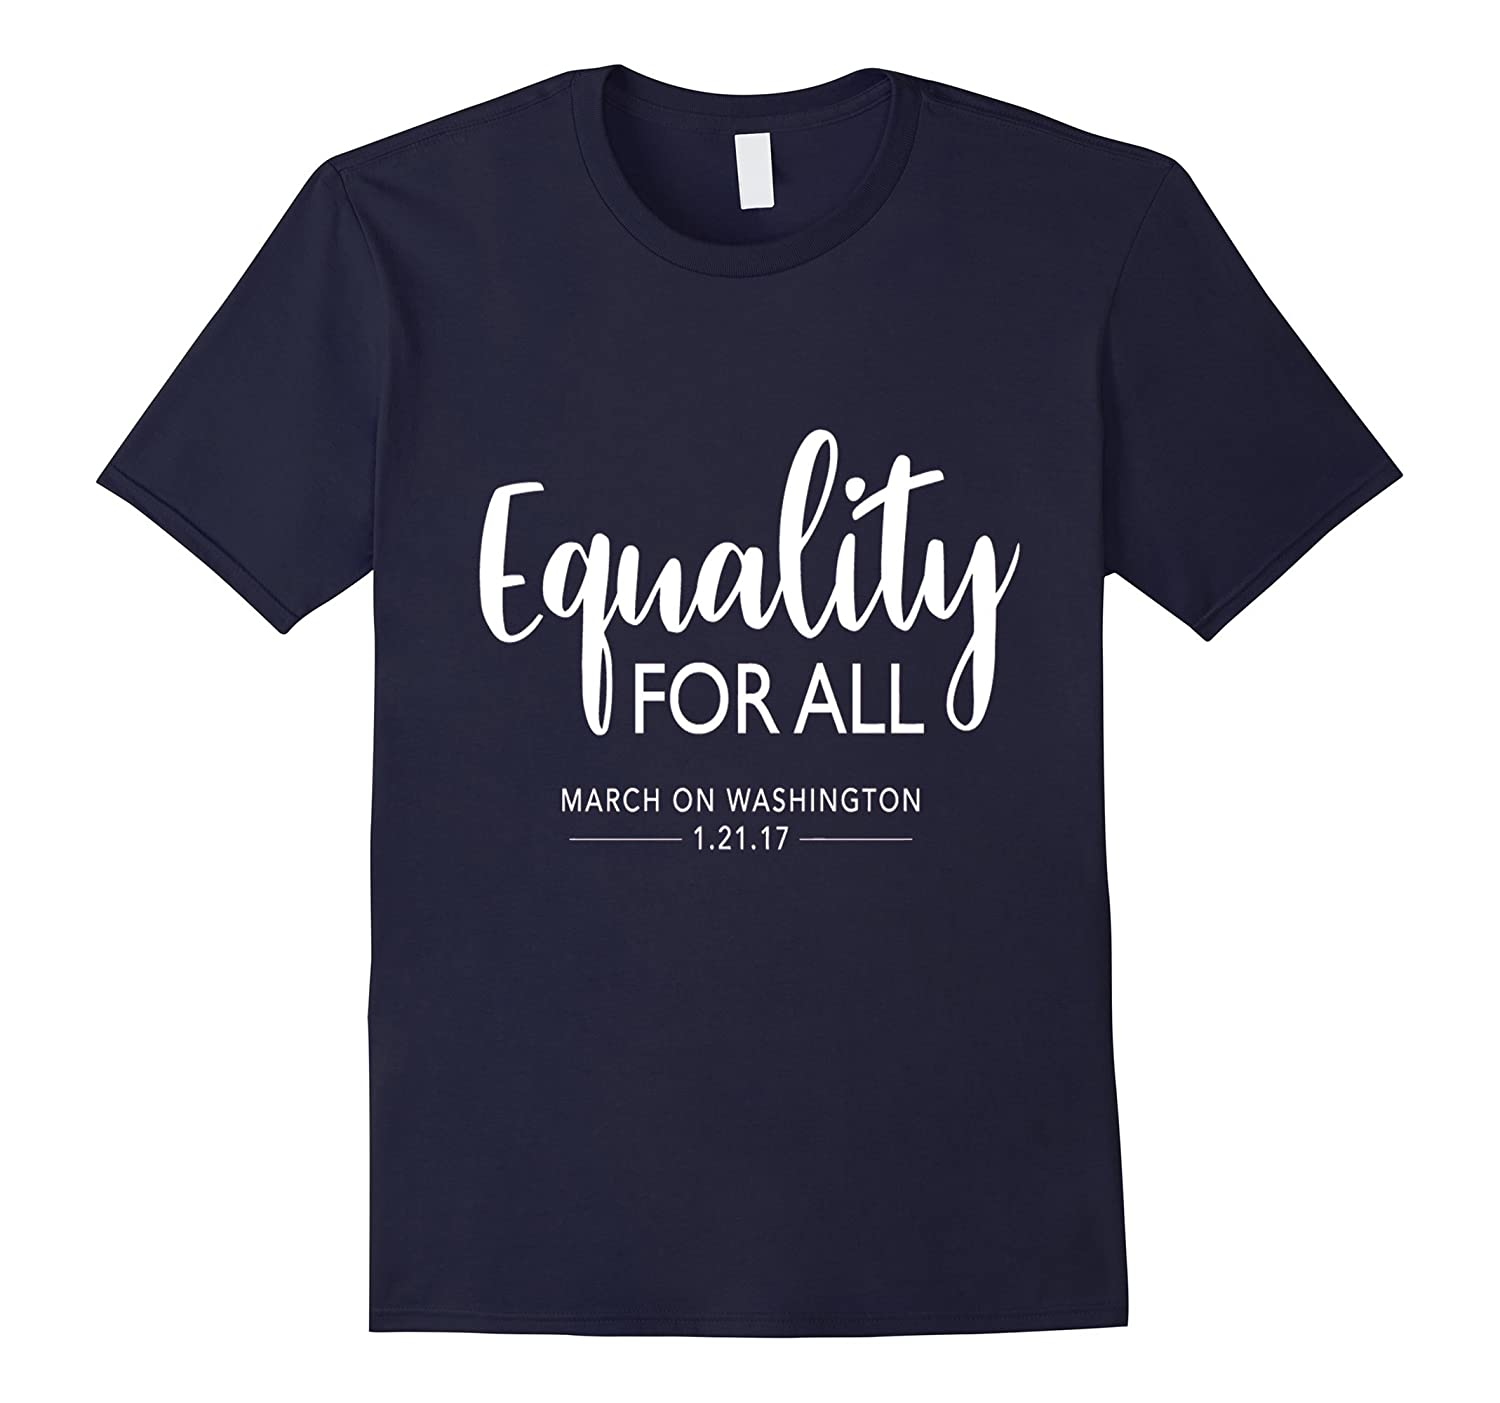 Equality For All - March on Washington 2017-Art